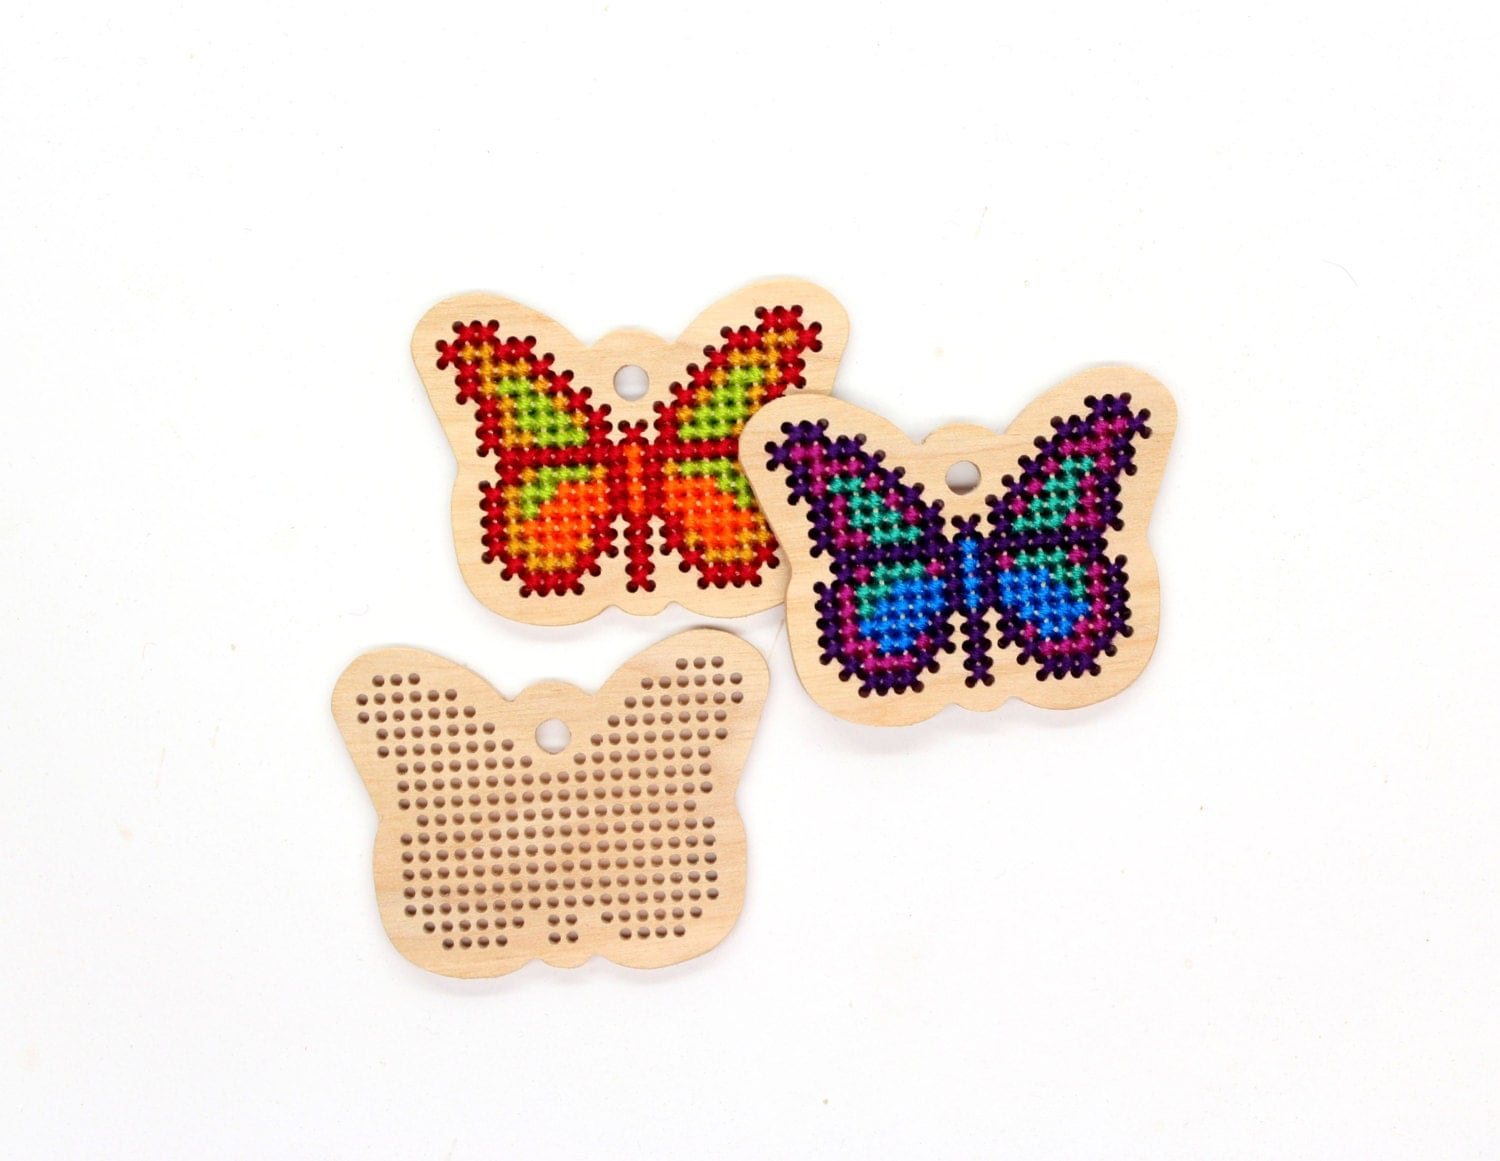 Wooden cross stitch blanks for modern embroidery